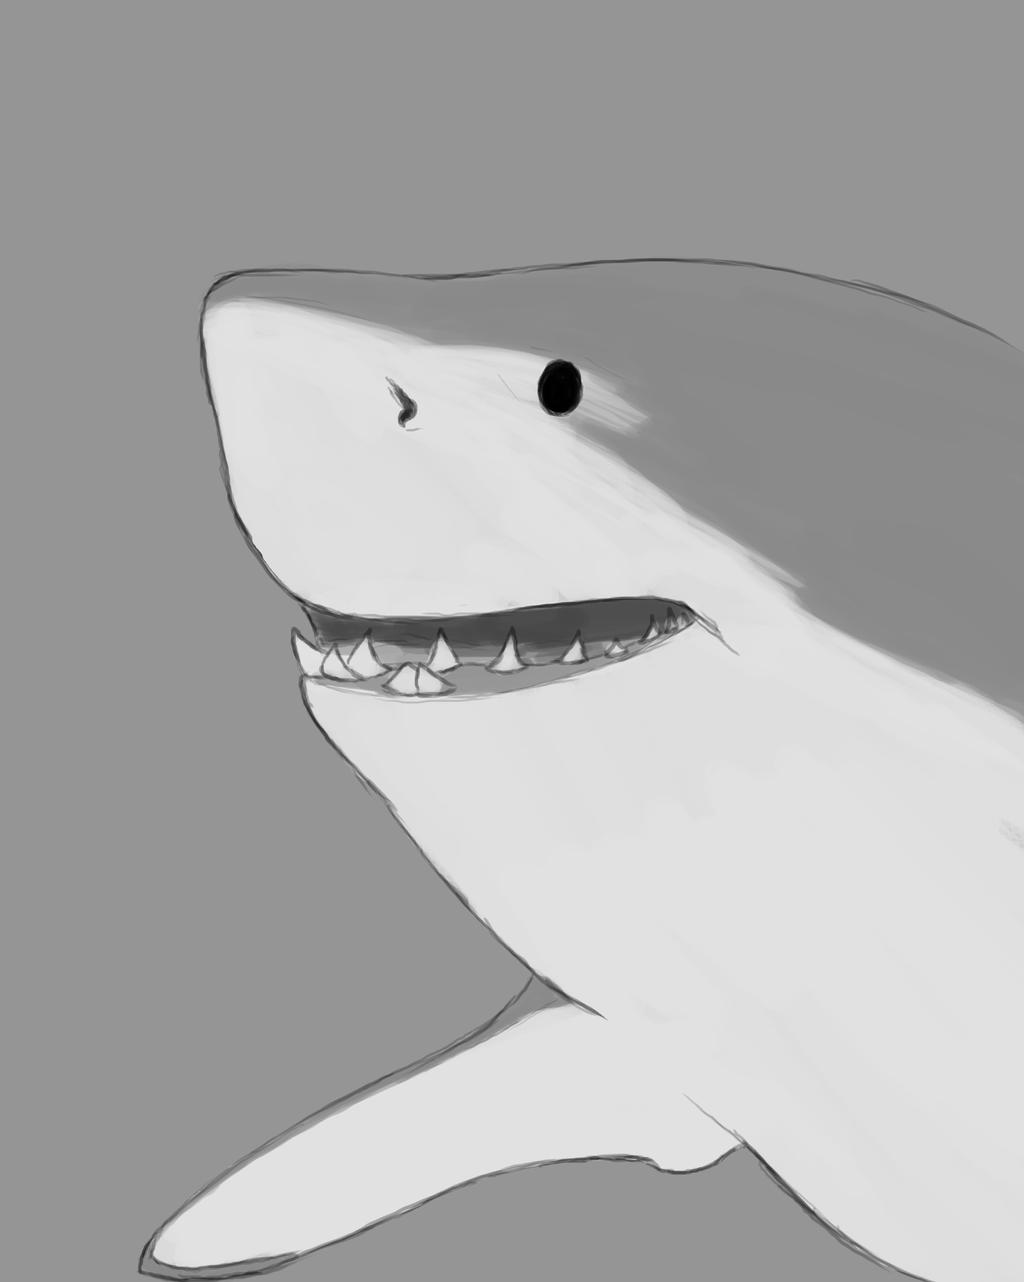 Shark Daily sketch #663 by GothicVampireFreak